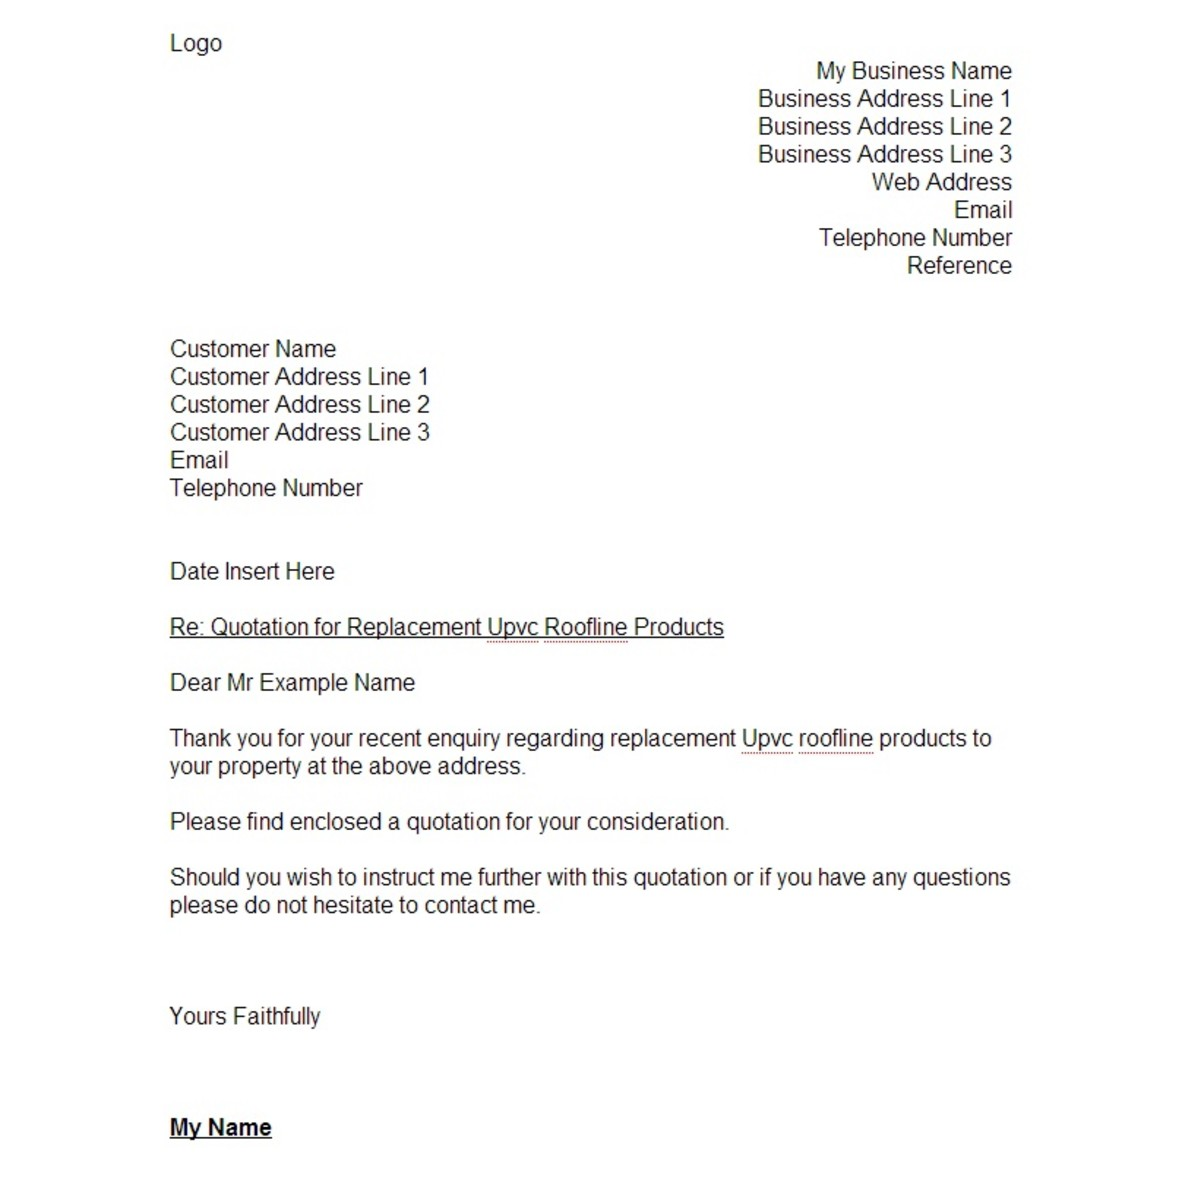 Page 1.  The cover page of a typical quotation letter I would send to a customer.